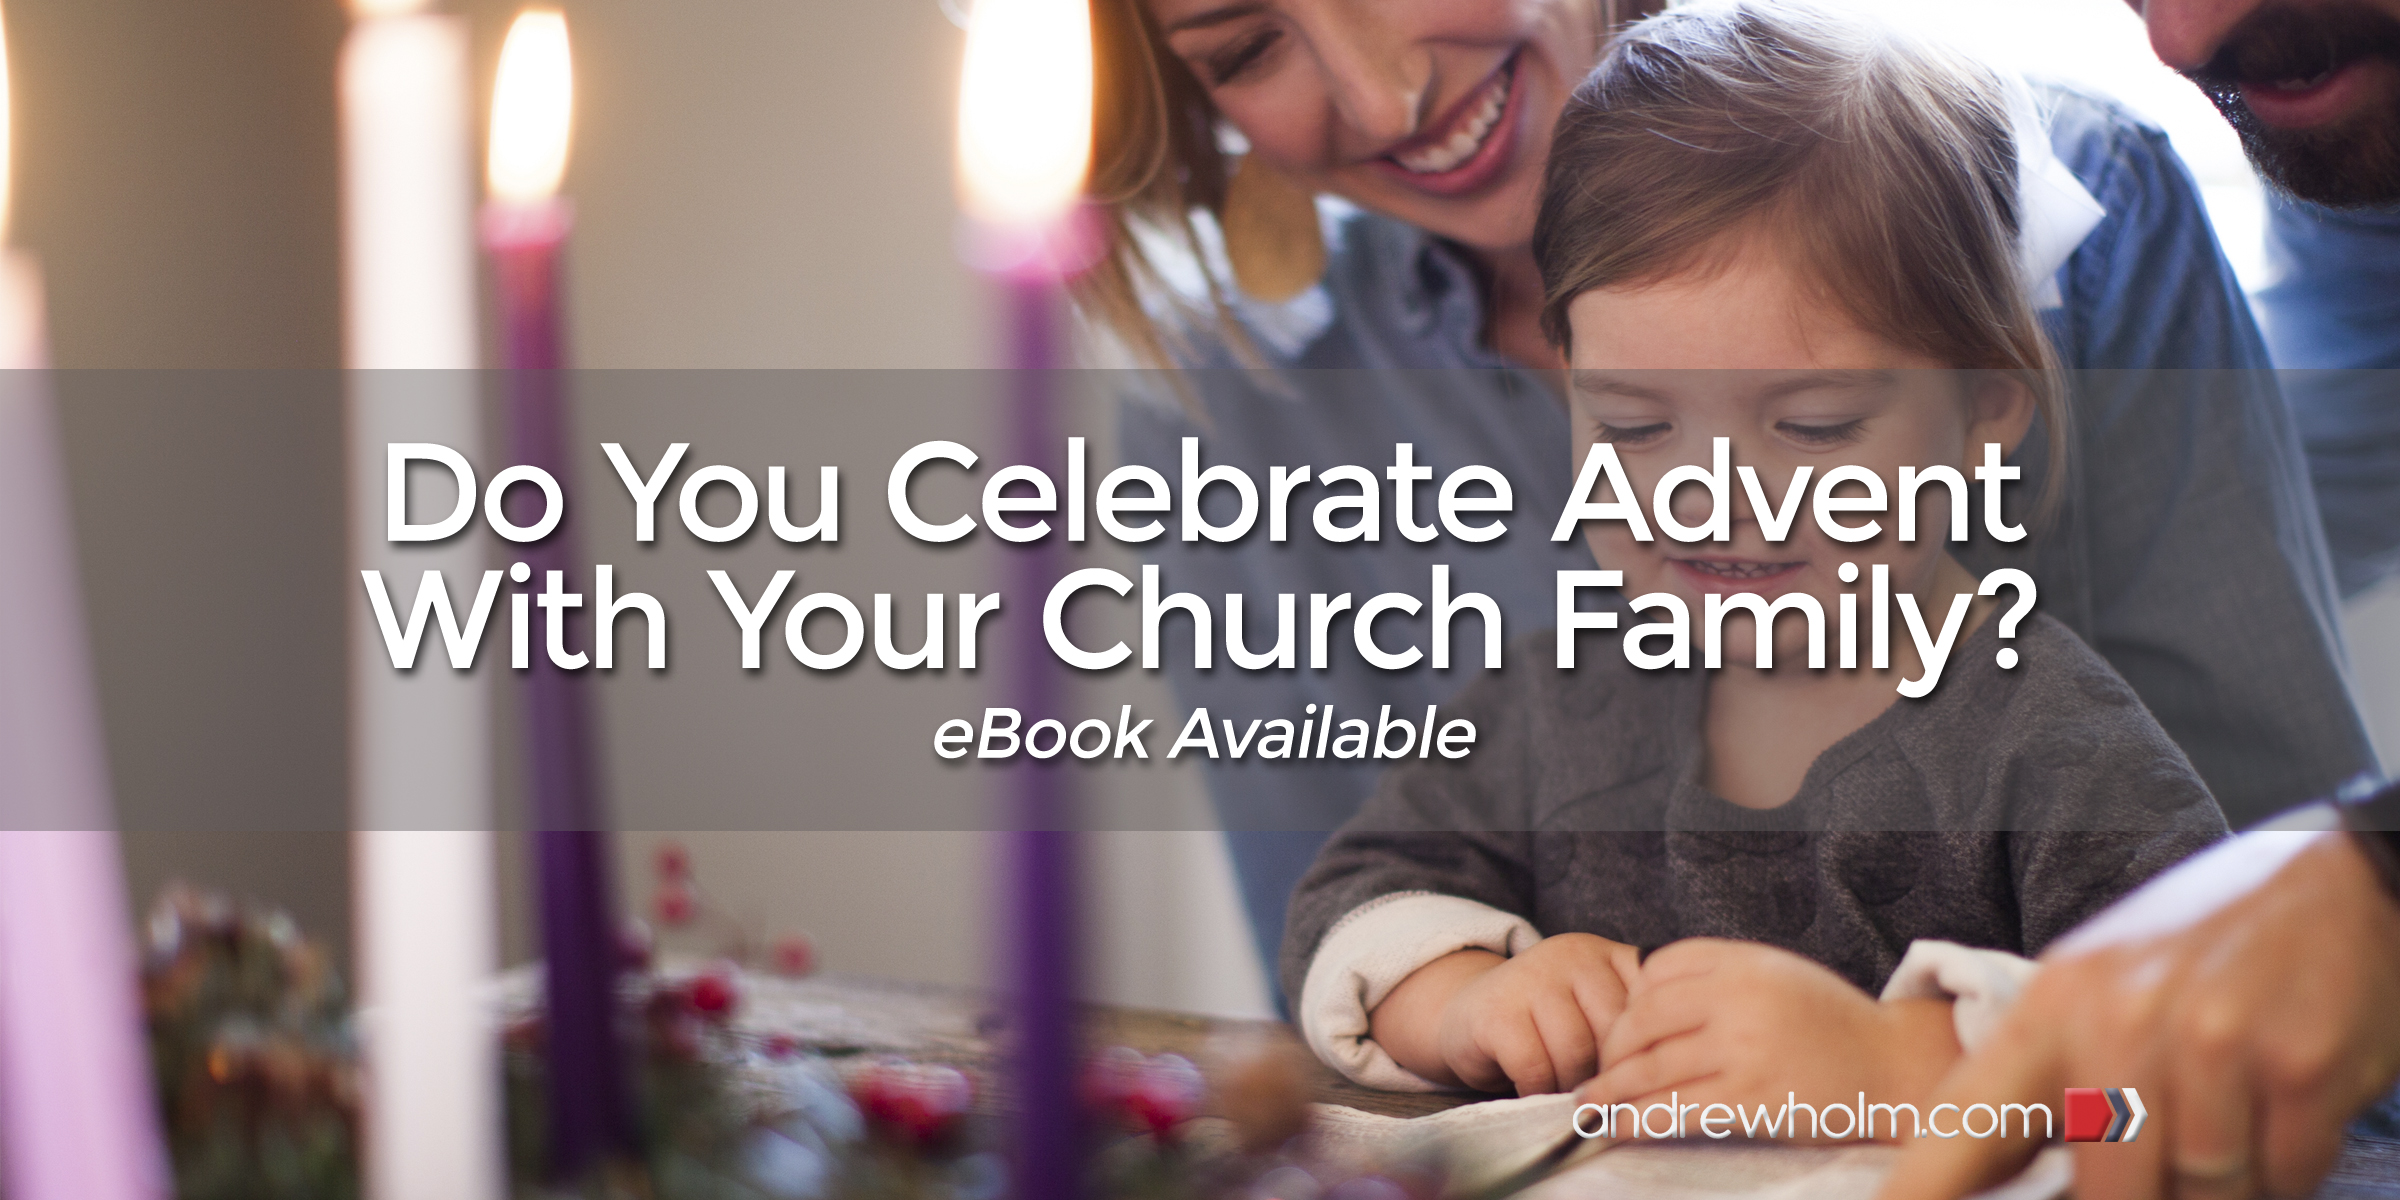 Do You Celebrate Advent With Your Church Family?